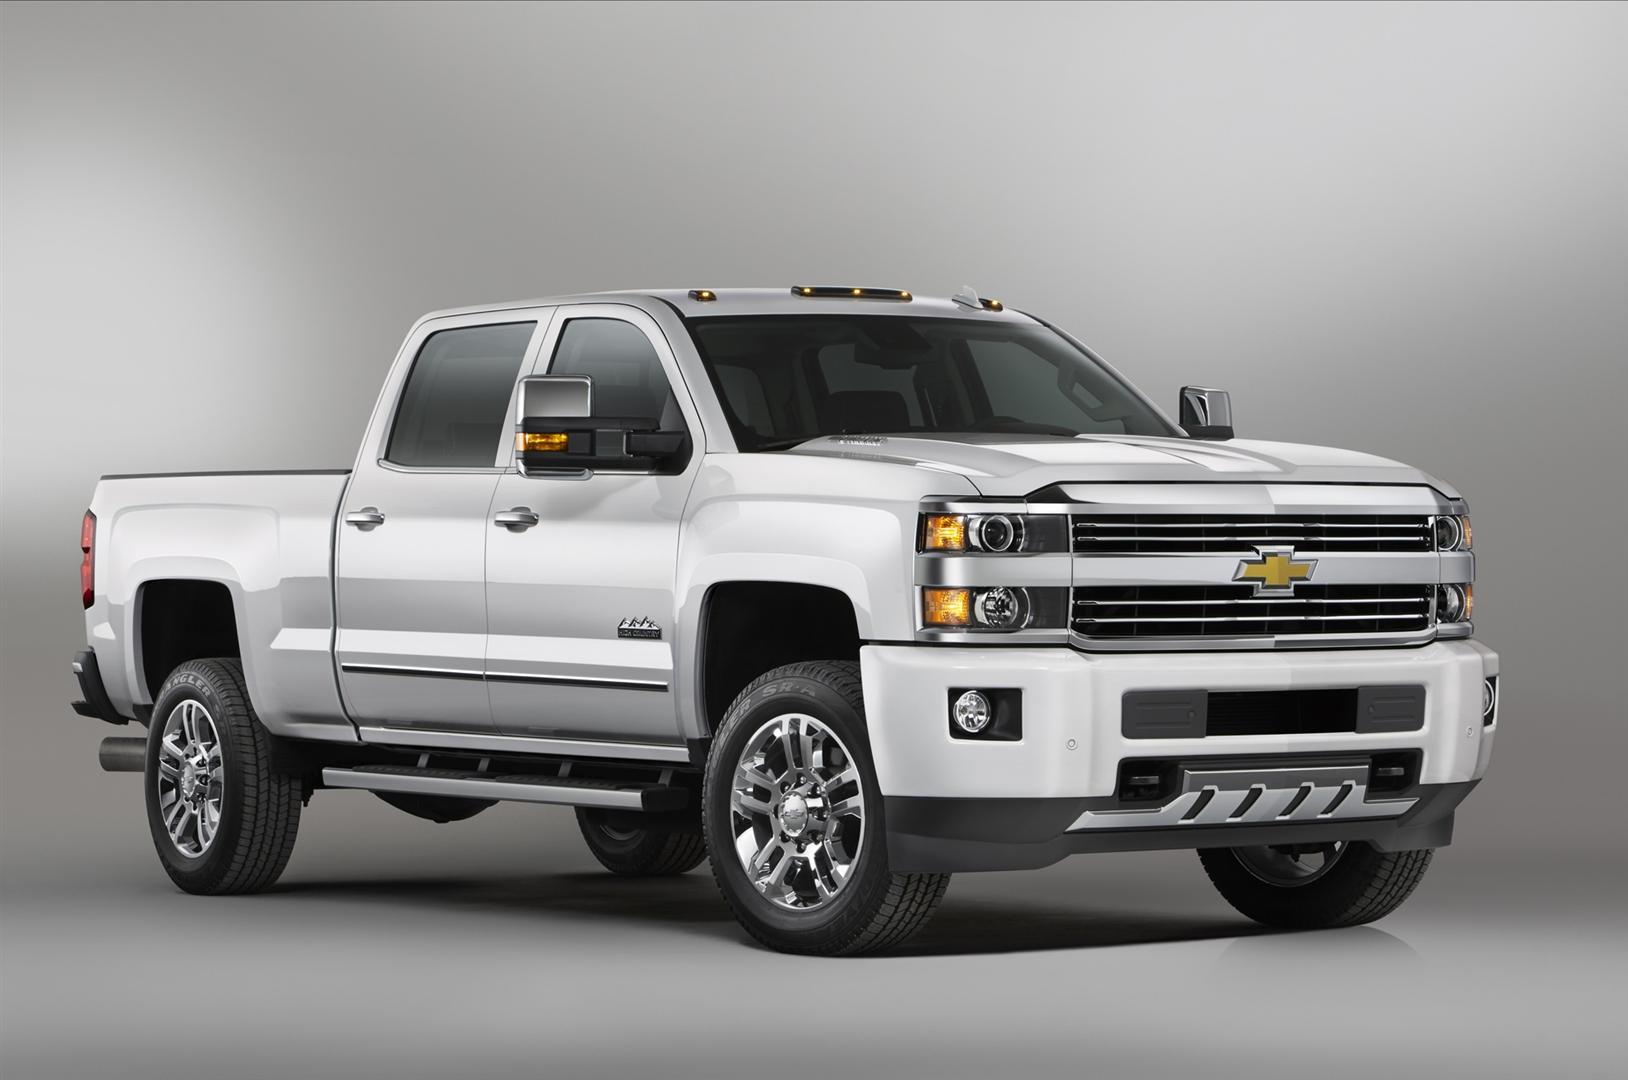 2019 Chevrolet Silverado 1500 Diesel Crew Cab Preview Price News